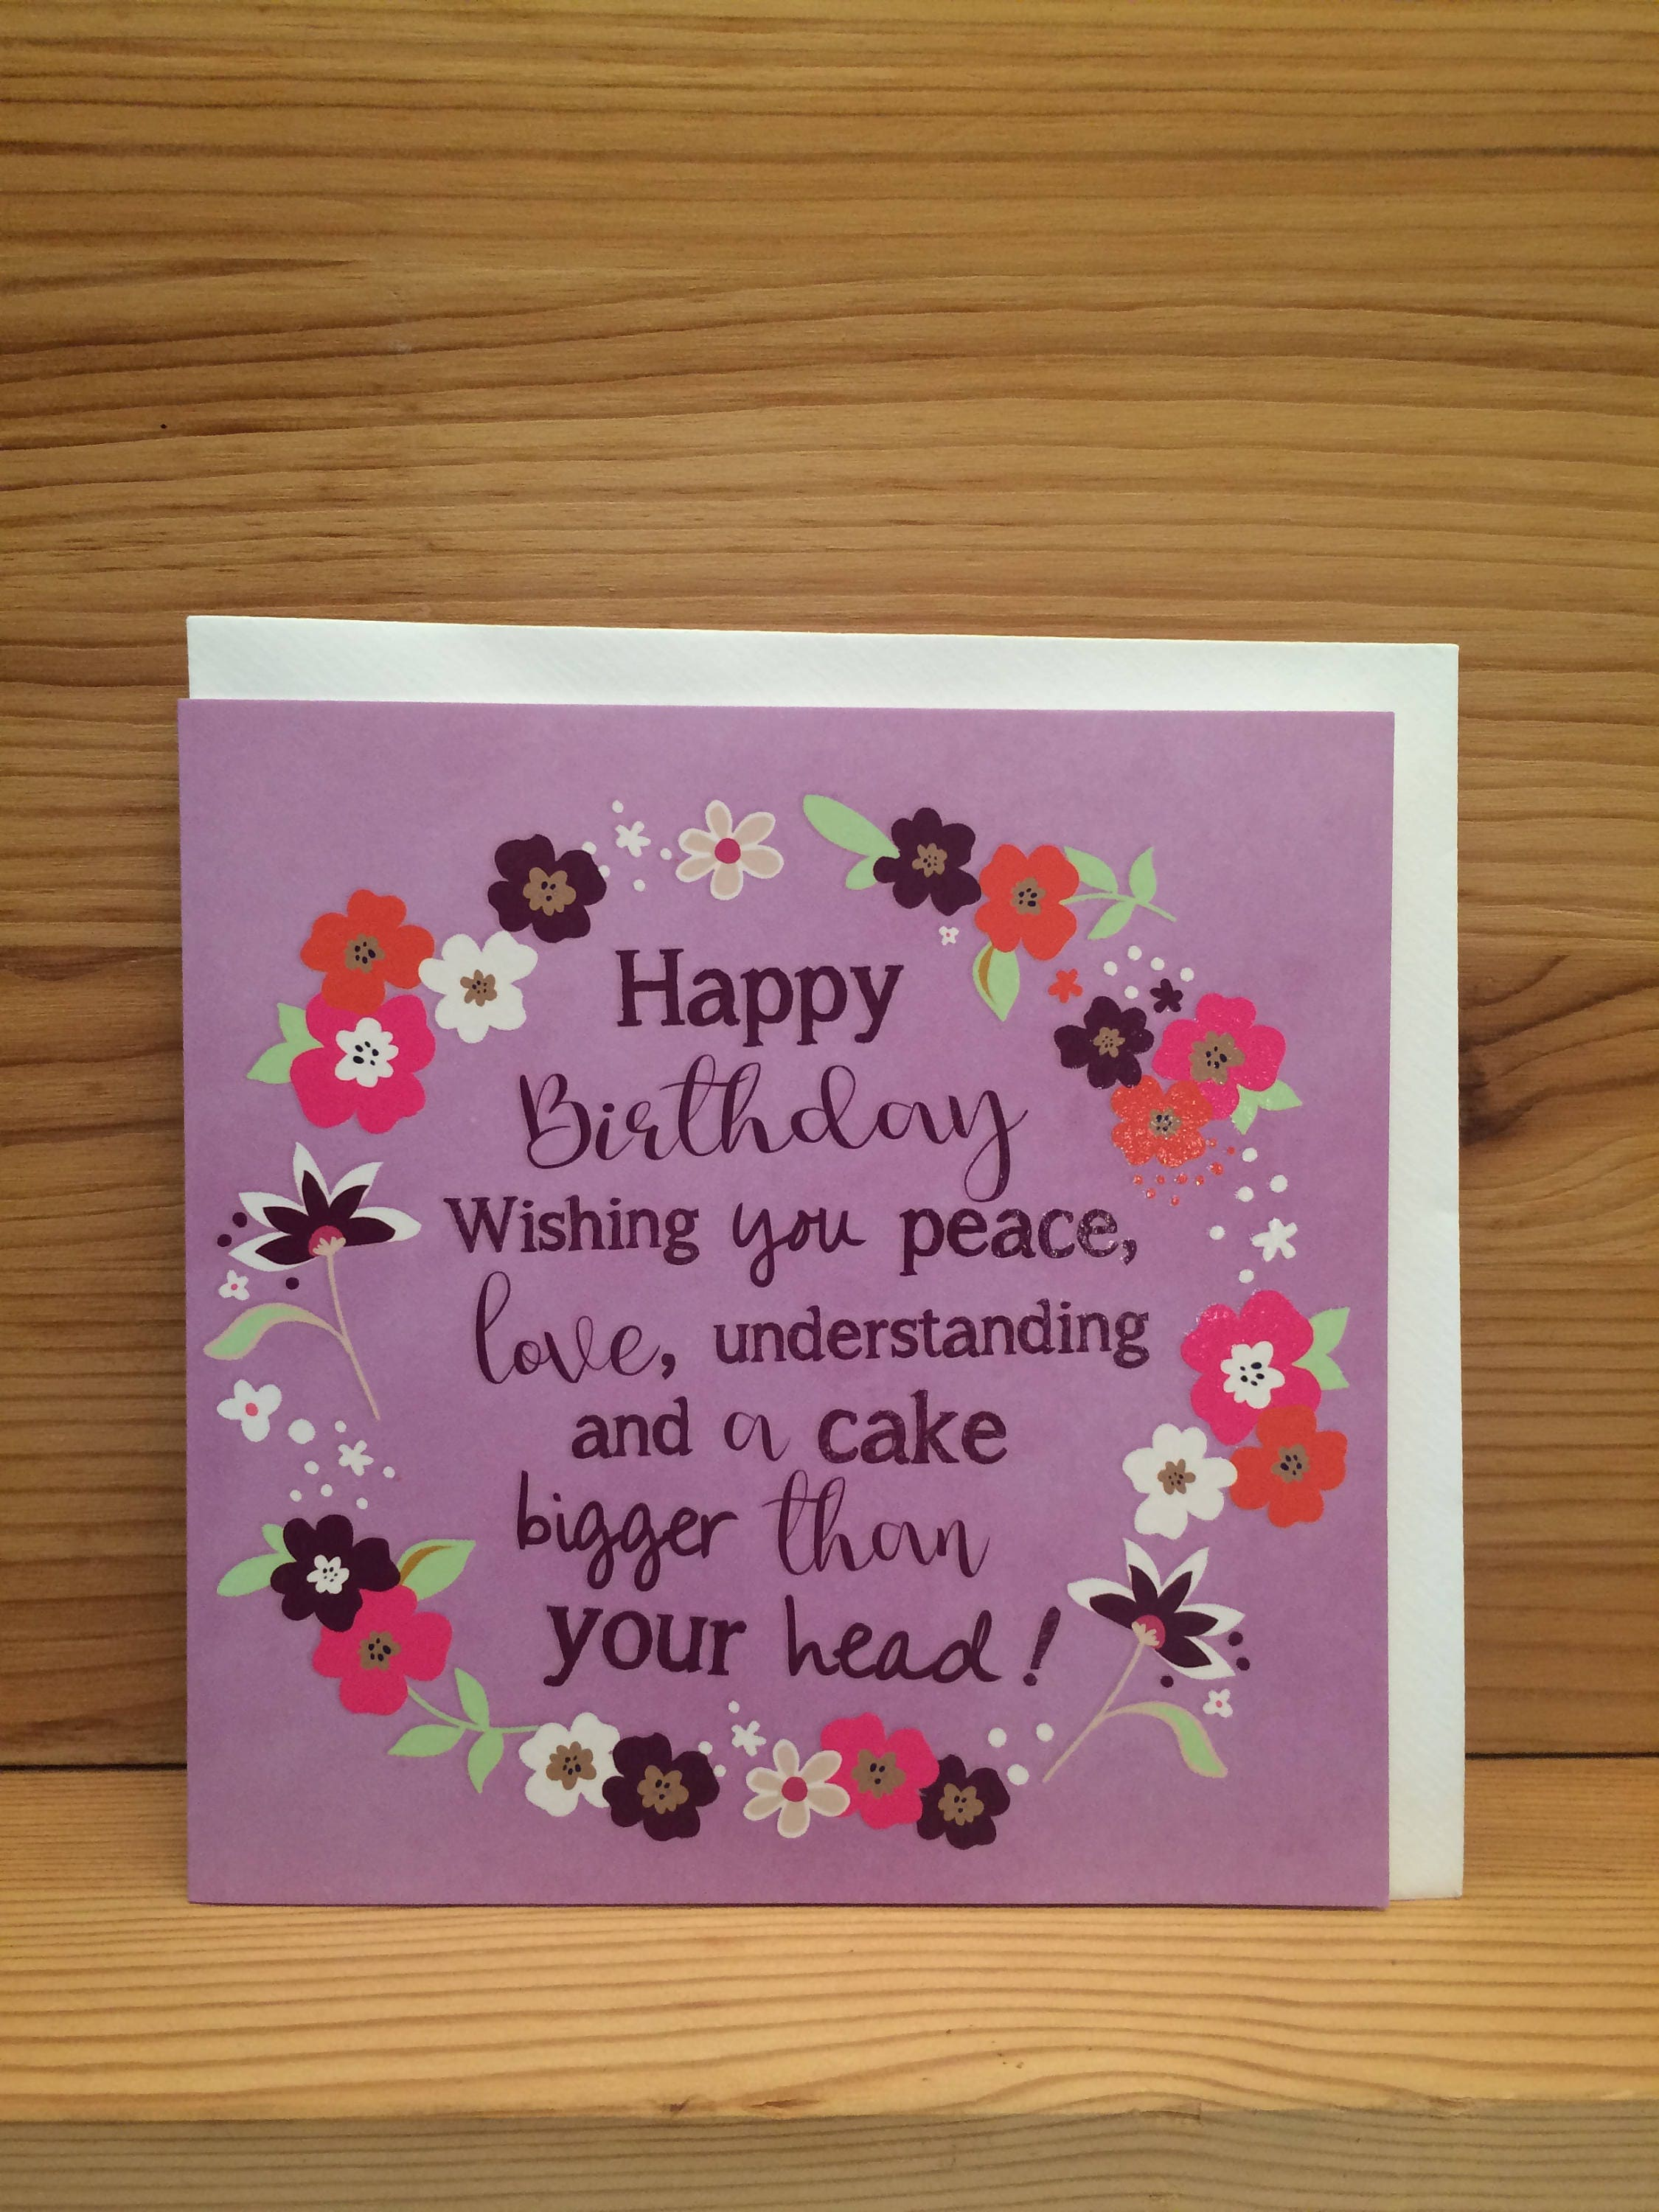 Happy birthday card birthday cake funny quote purple etsy zoom izmirmasajfo